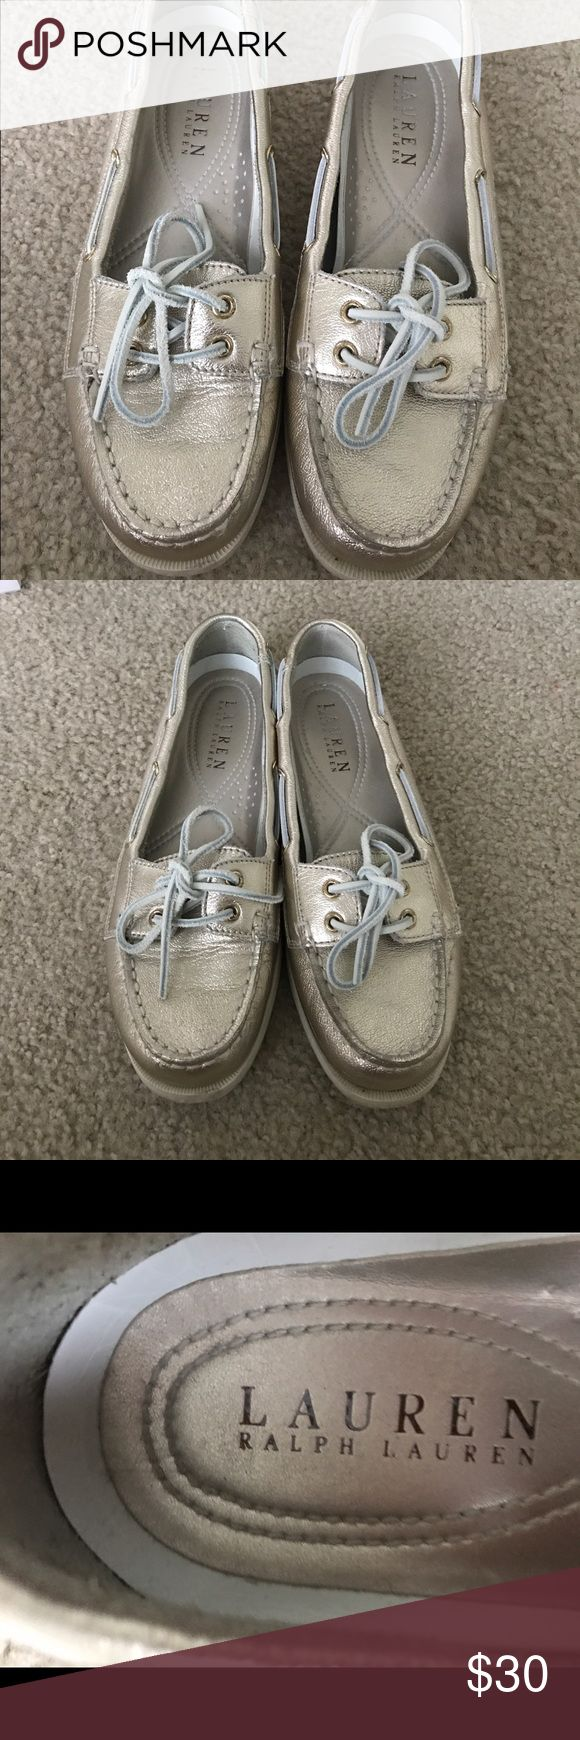 Ralph Lauren Gold Leather Boat Shoes Size 8 Bought from DSW brand new. Worn a handful of times. A few scuffs but no major damage. In good condition. Lots of life left! Lauren Ralph Lauren Shoes Flats & Loafers